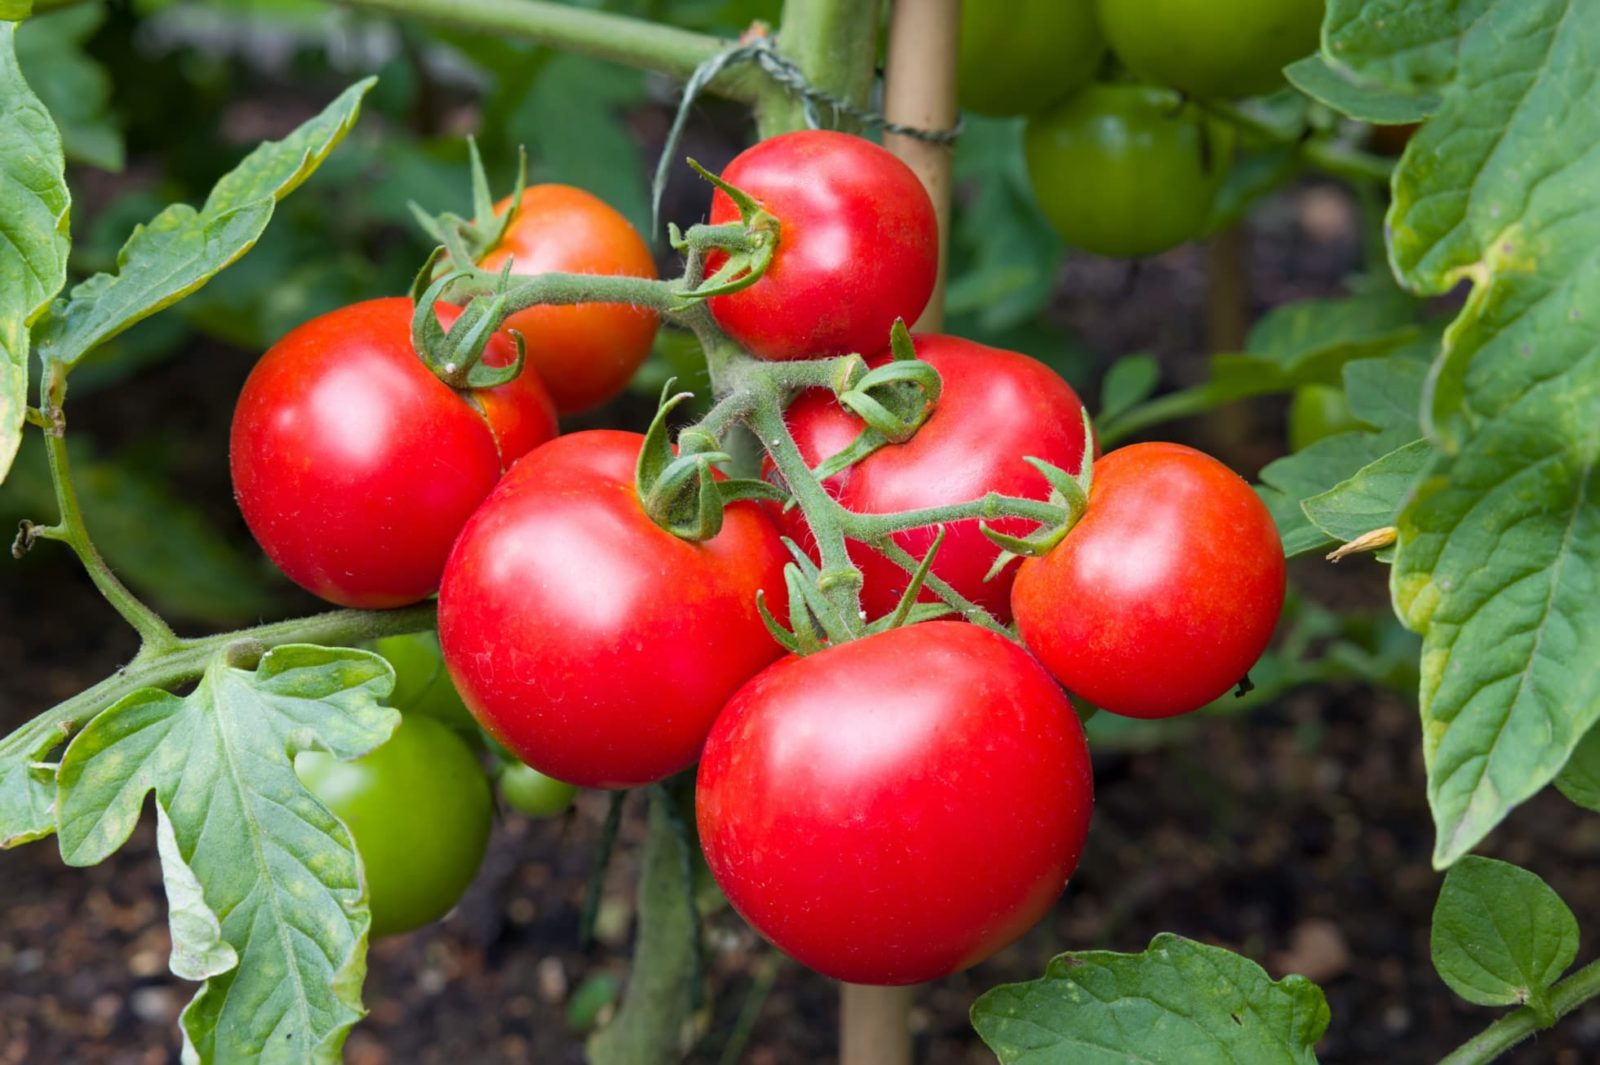 bright red tomatoes on the vine